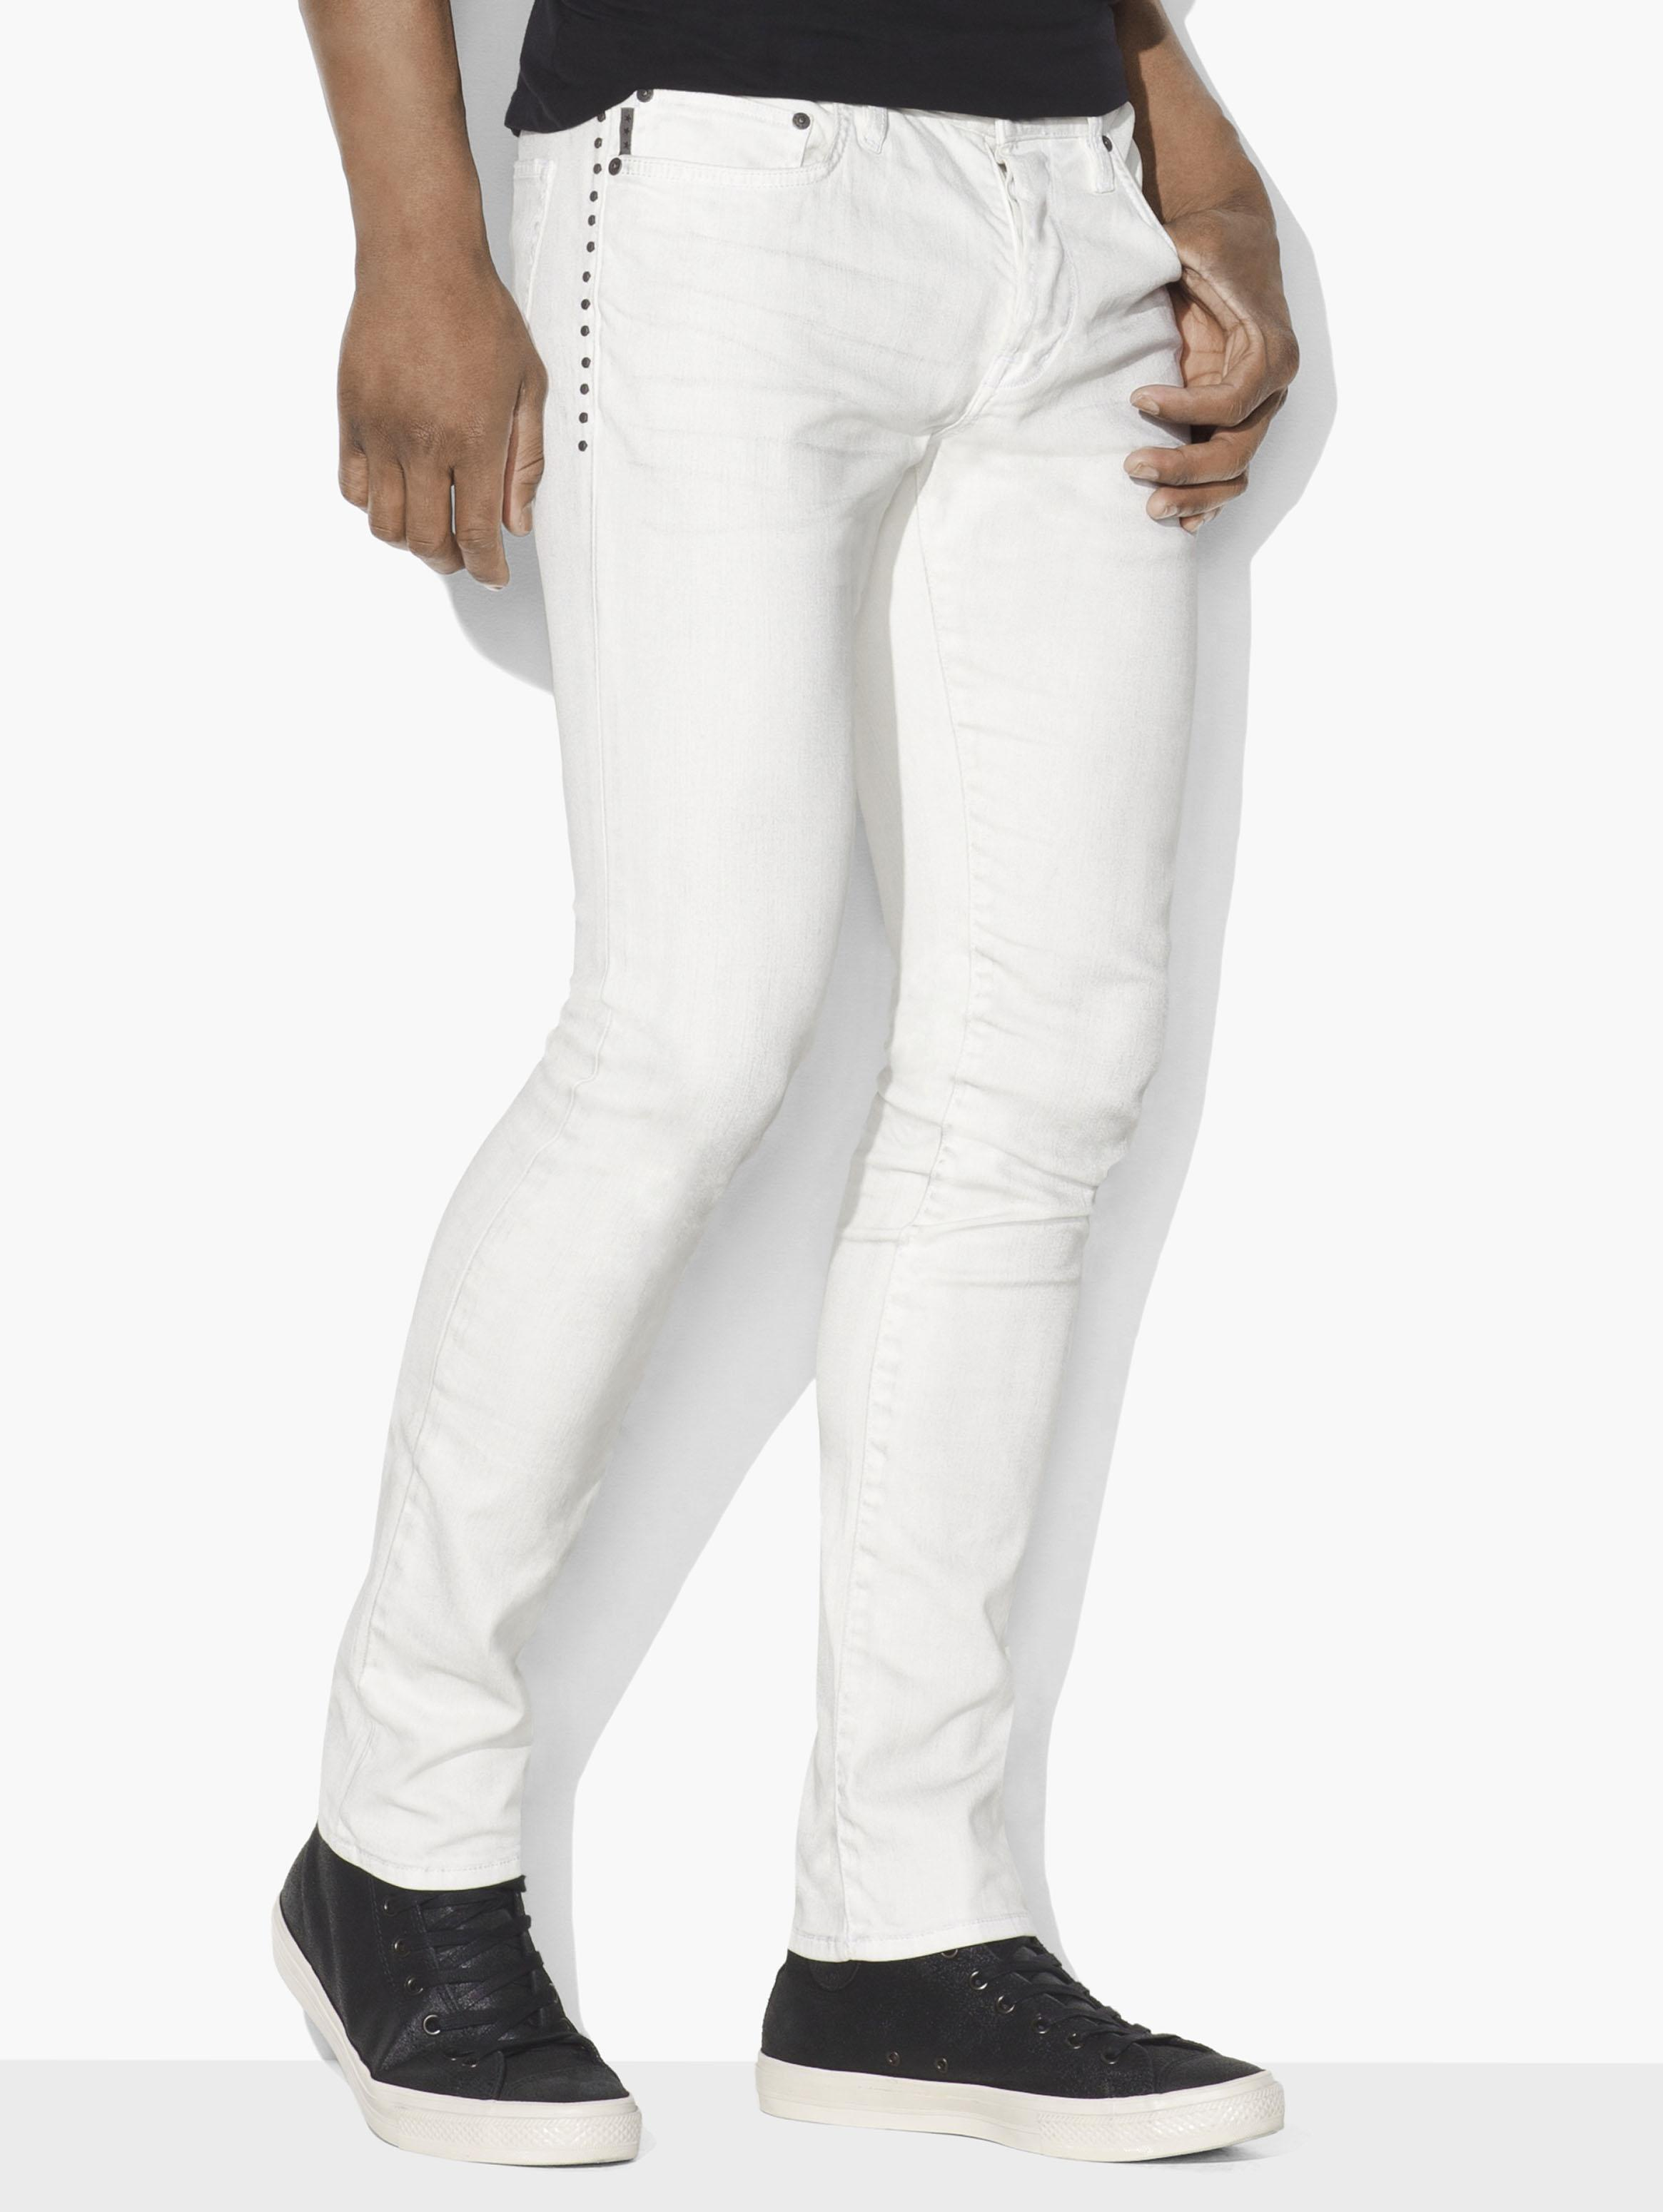 Studded Wight Jean